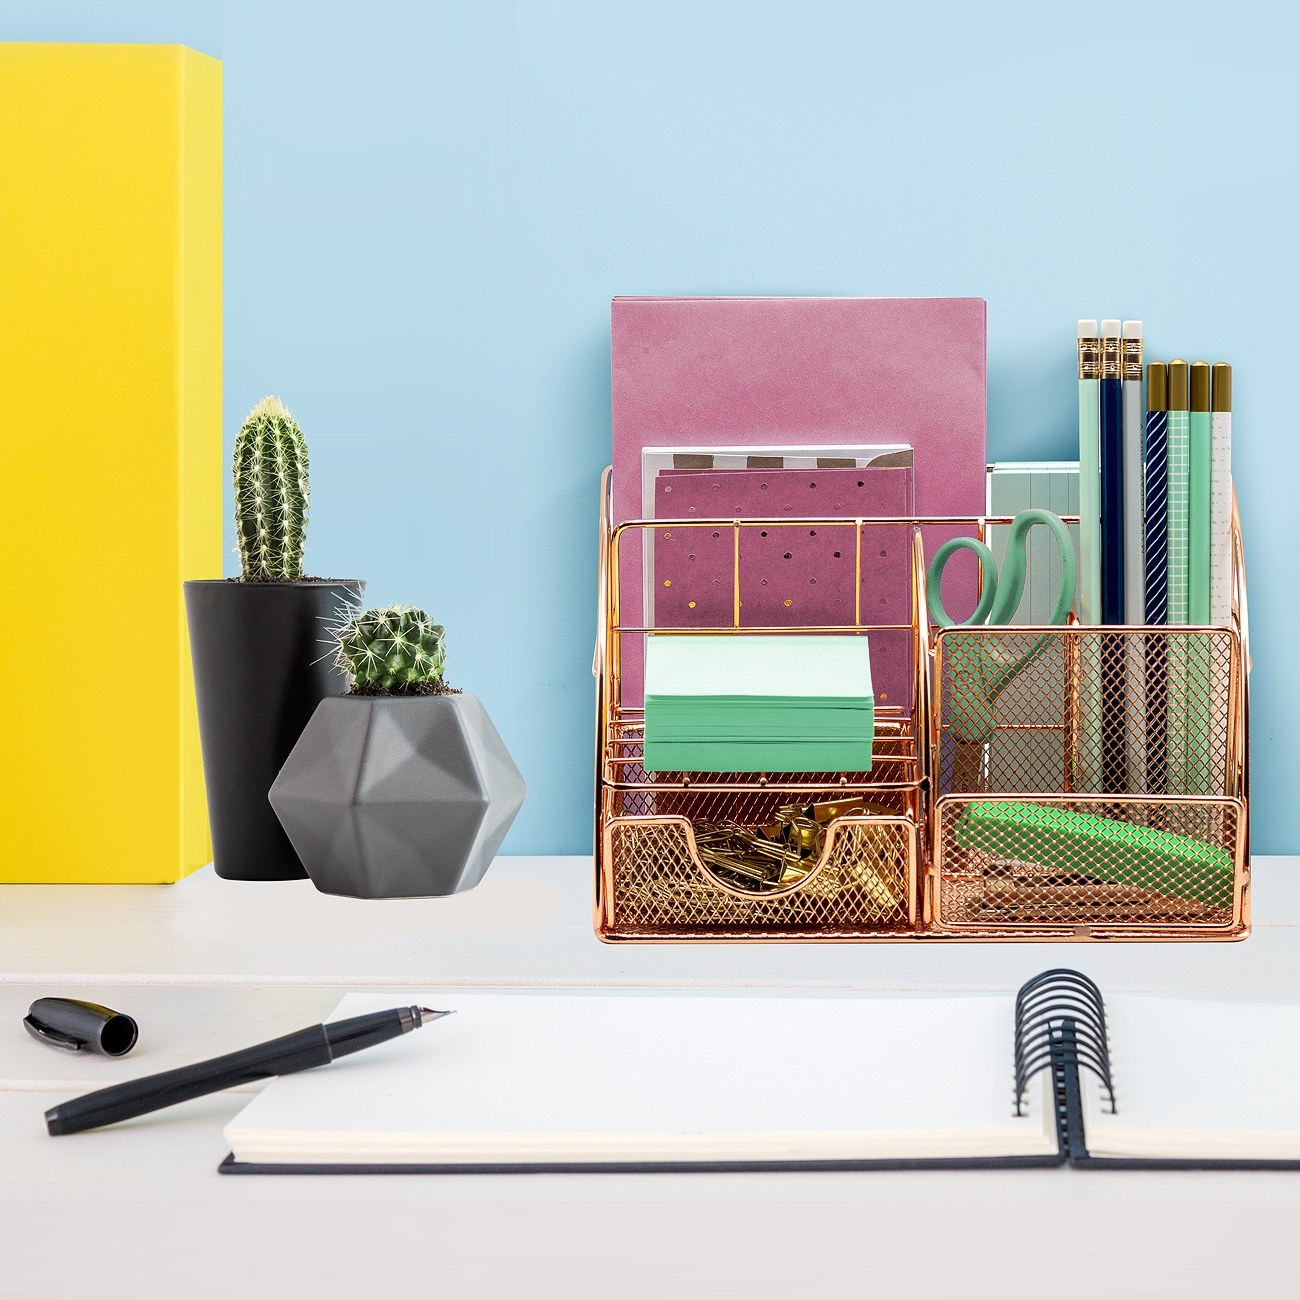 The desk organizer with items within